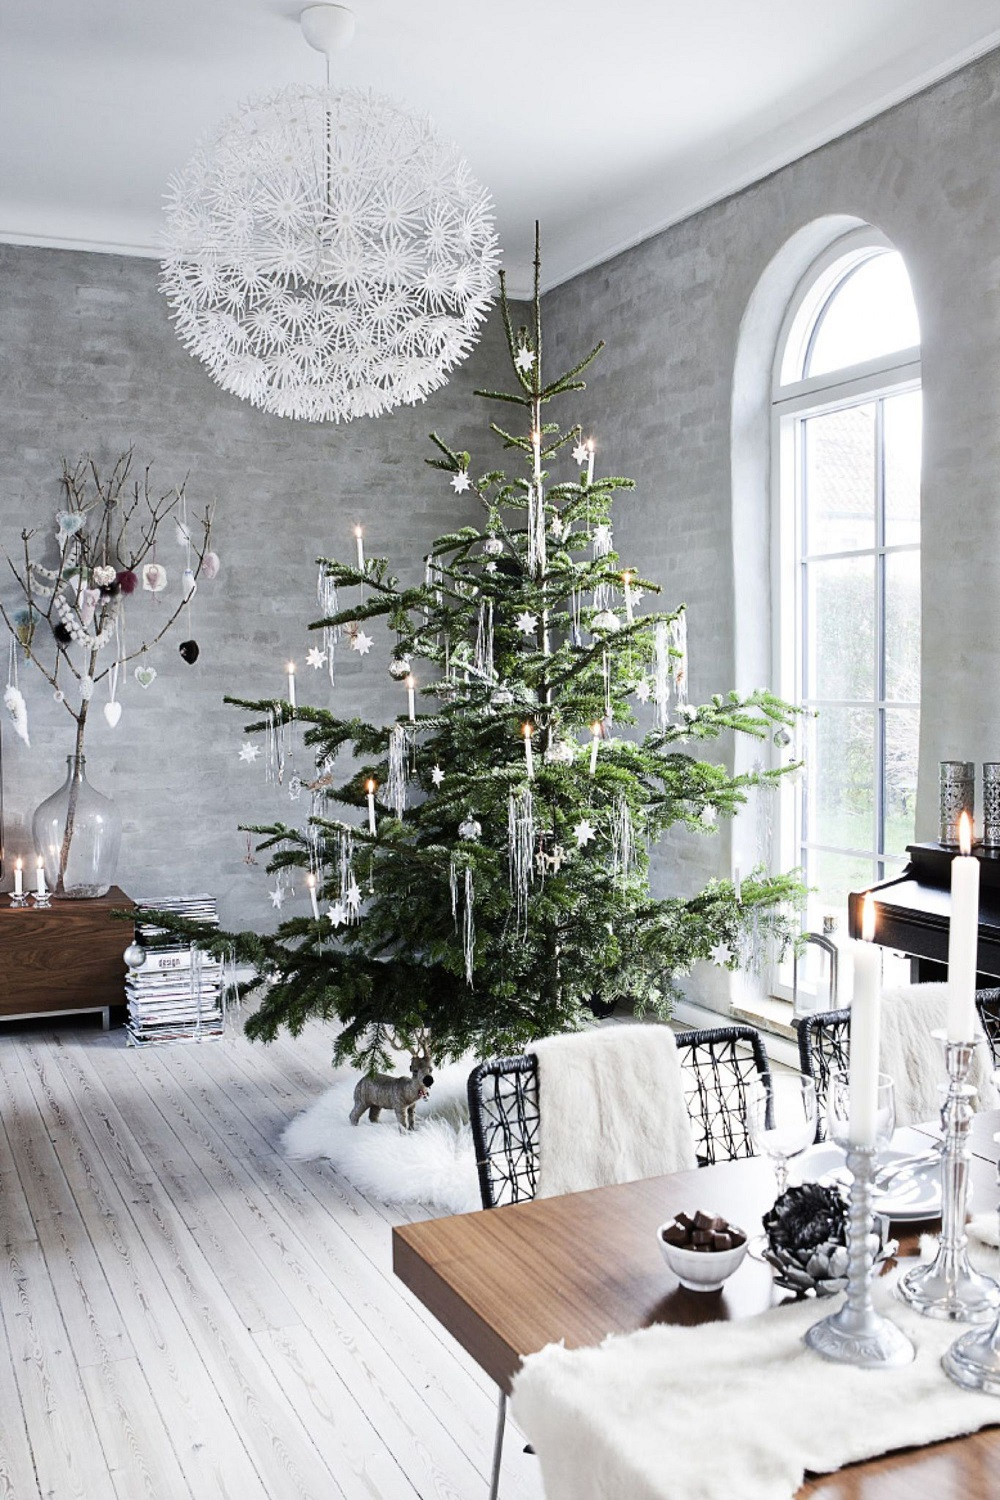 t4-8 Modern Christmas decoration Ideas that are heartwarming